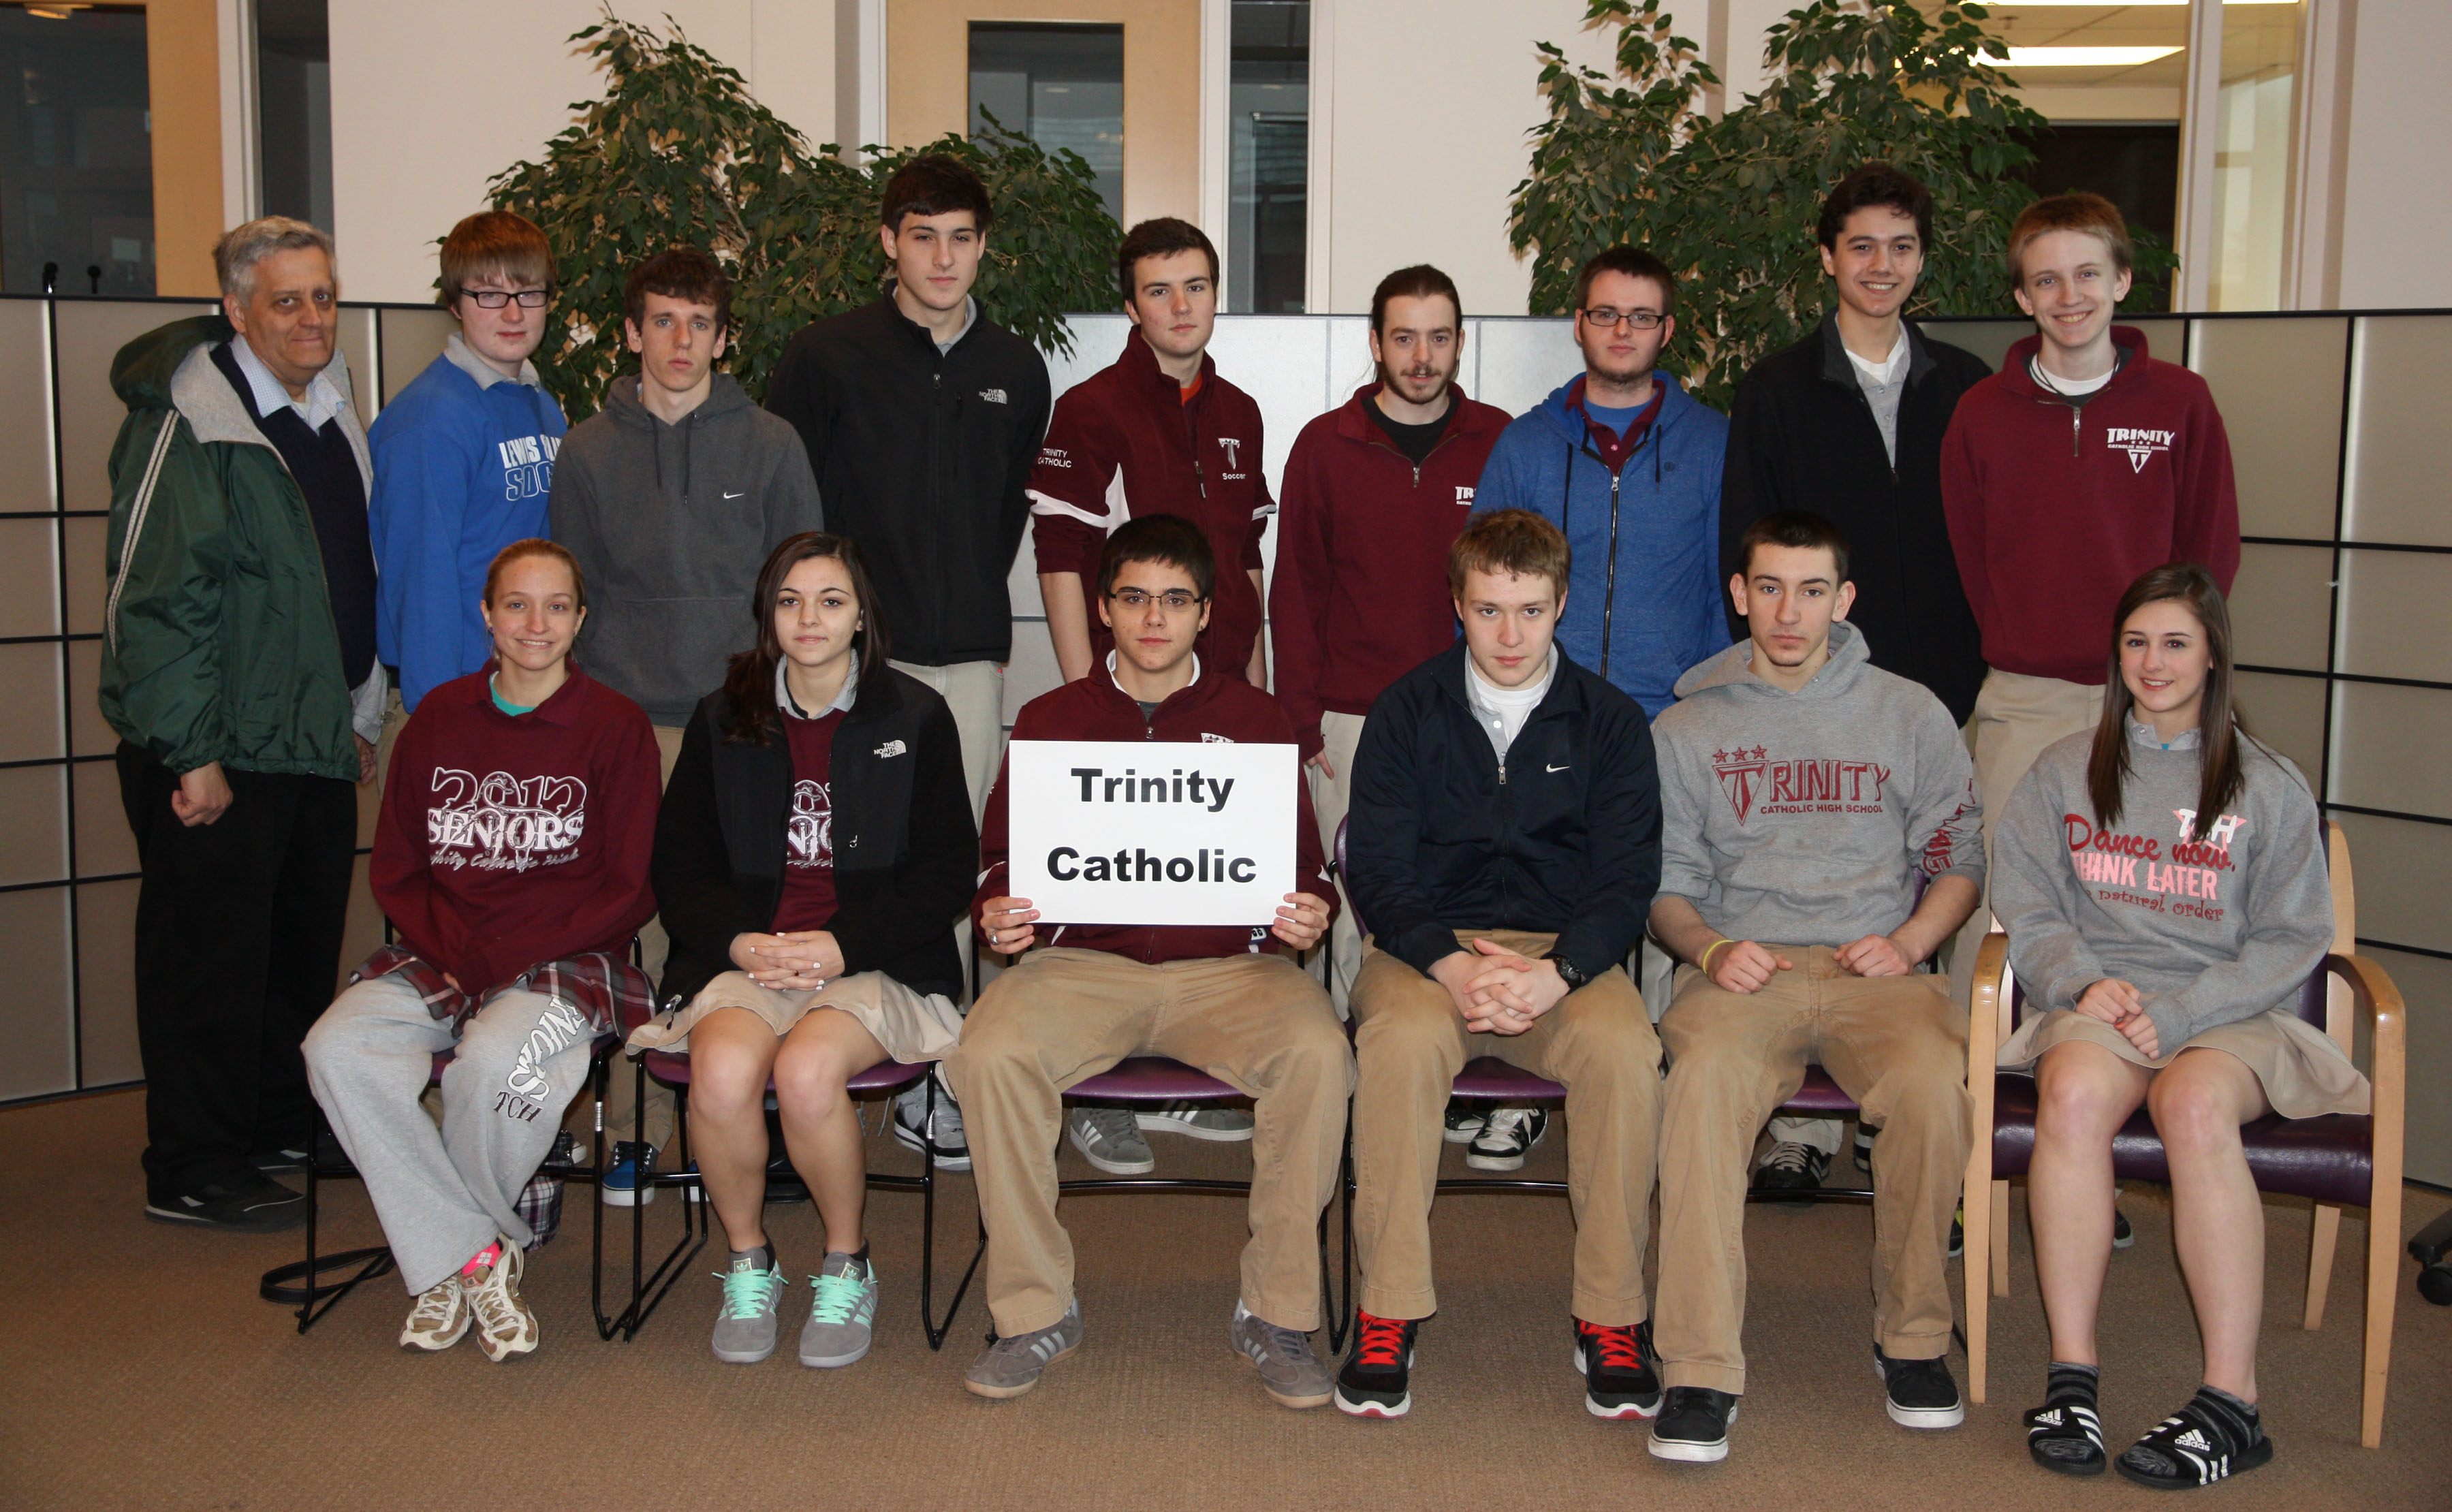 WYSE Trinity Catholic 1 of 2 2012